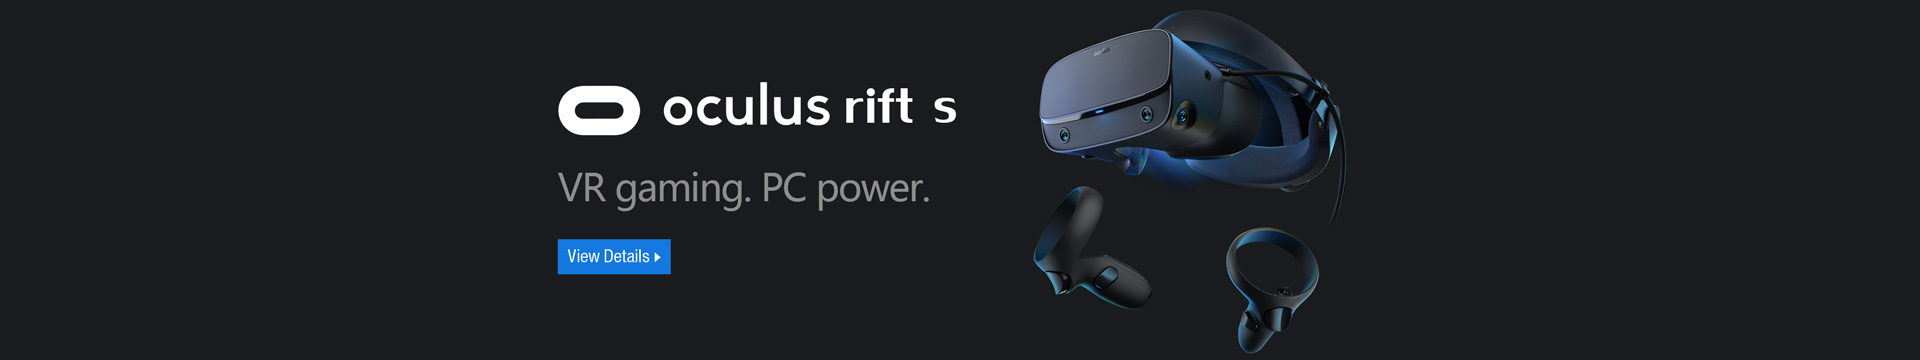 Virtual Reality Controllers & Accessories - Newegg com